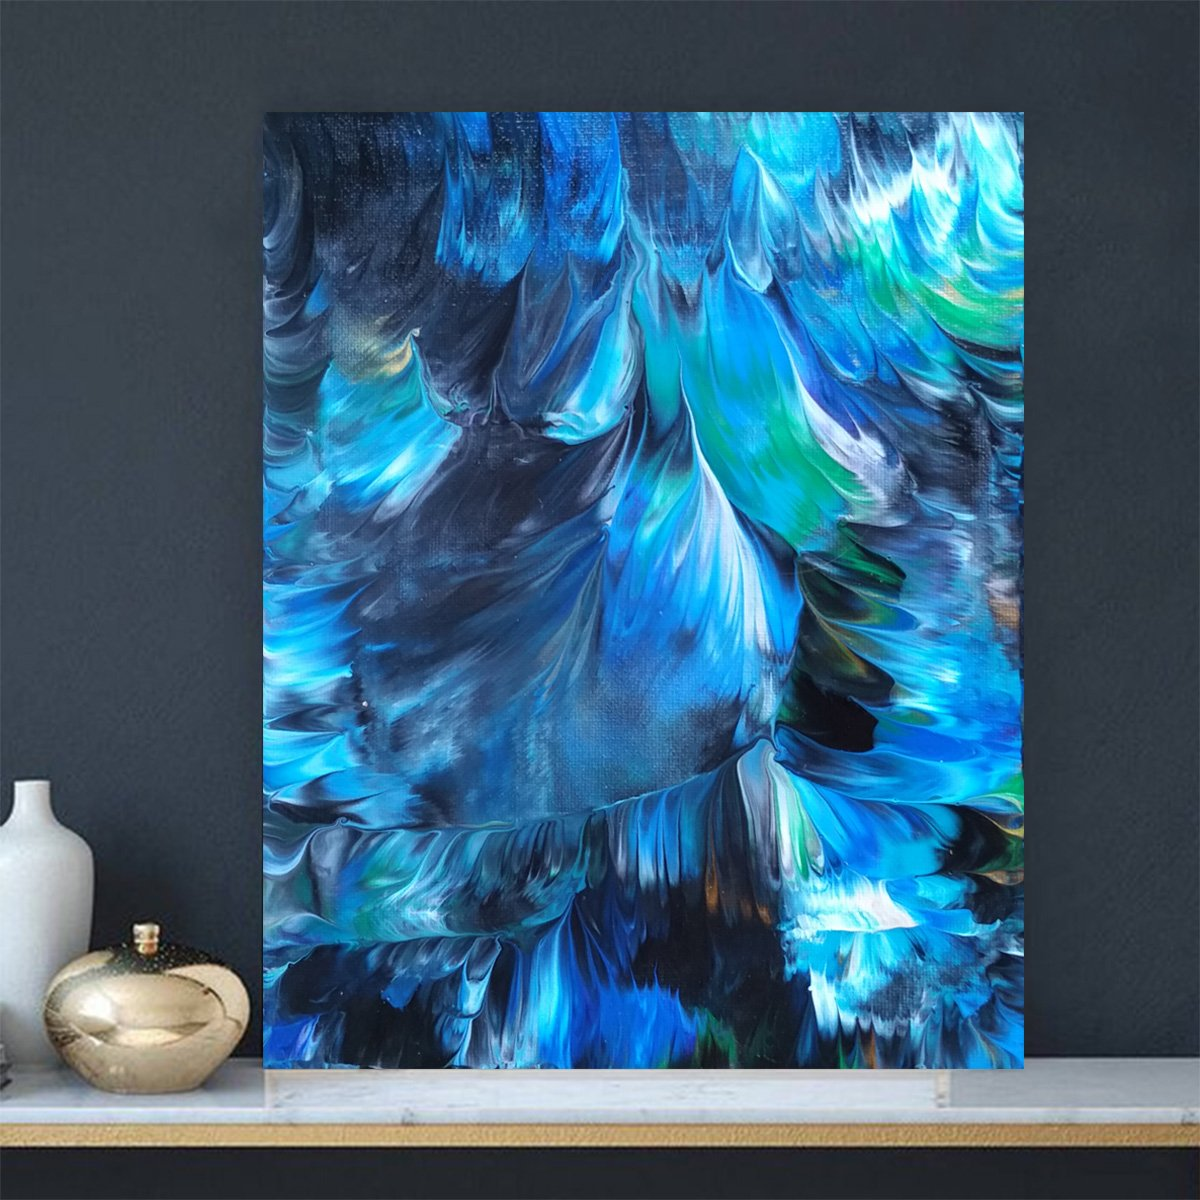 Poseidons-Garden-Original-abstract-expressionism-wallart-painting-large-abstract-painting-for-sale-buy-art-online-beautiful-blue-colourful-painting